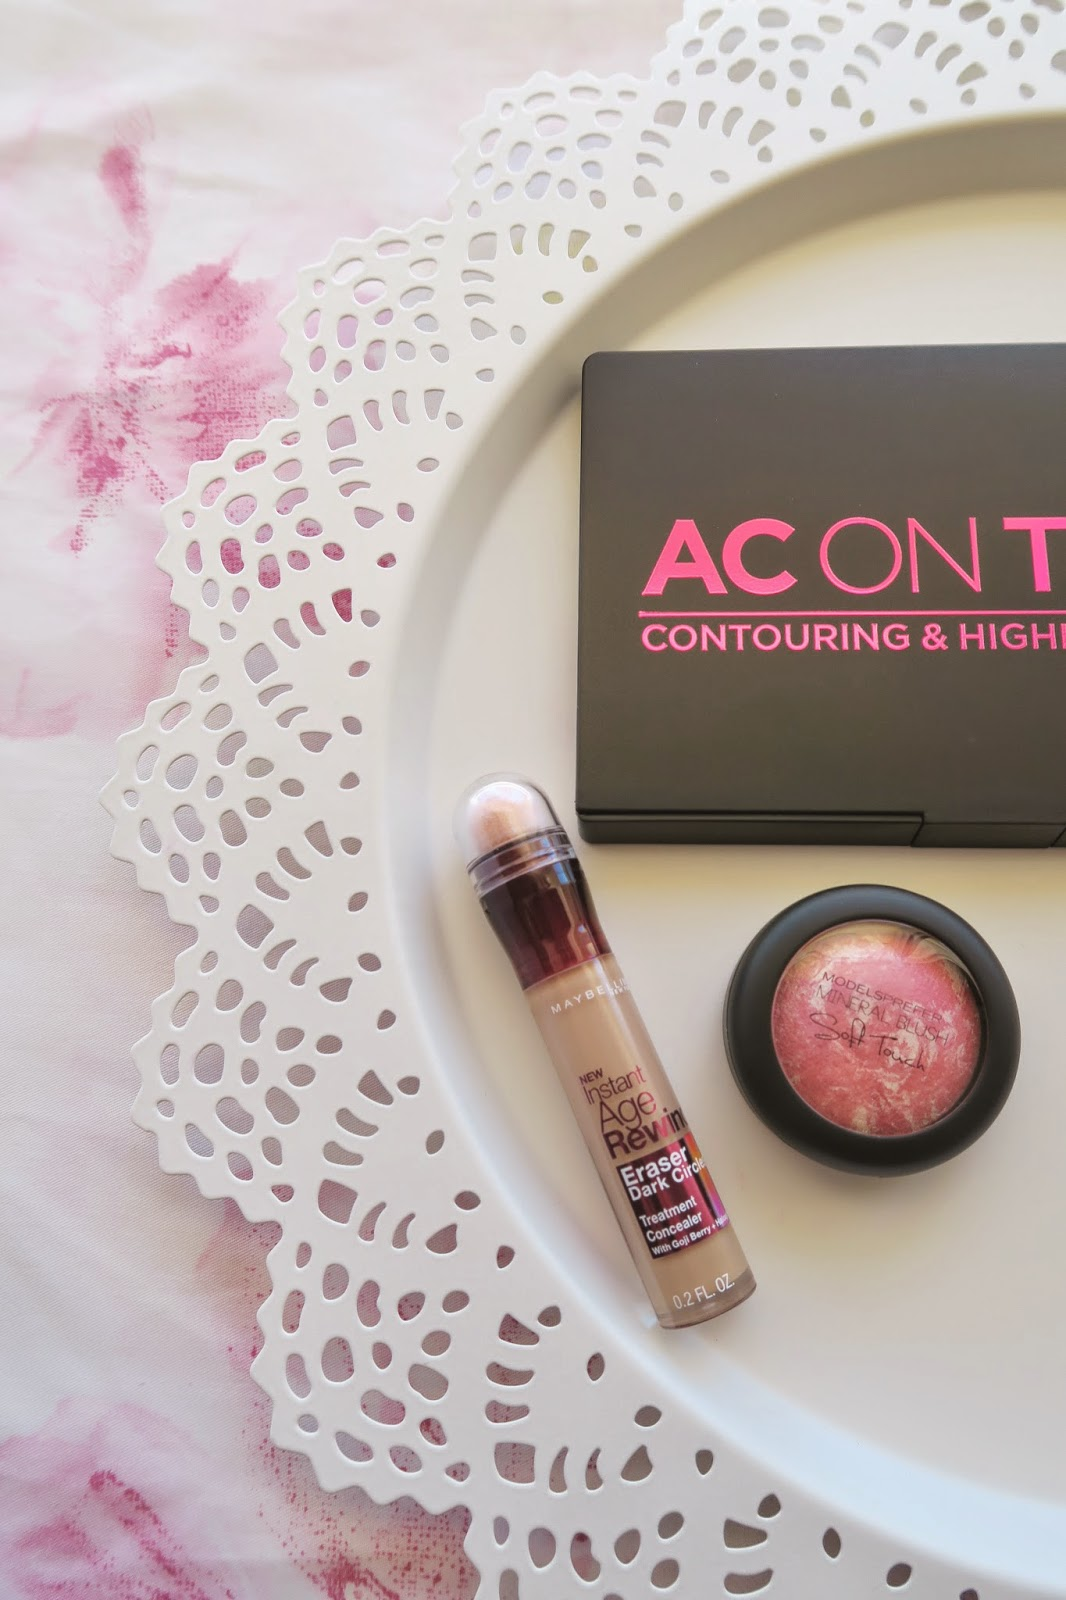 Priceline Haul, Priceline 40% off Costmetics Haul, Beauty Blogger, Blogger Photography, Beauty Flatlay, Australian Blogger